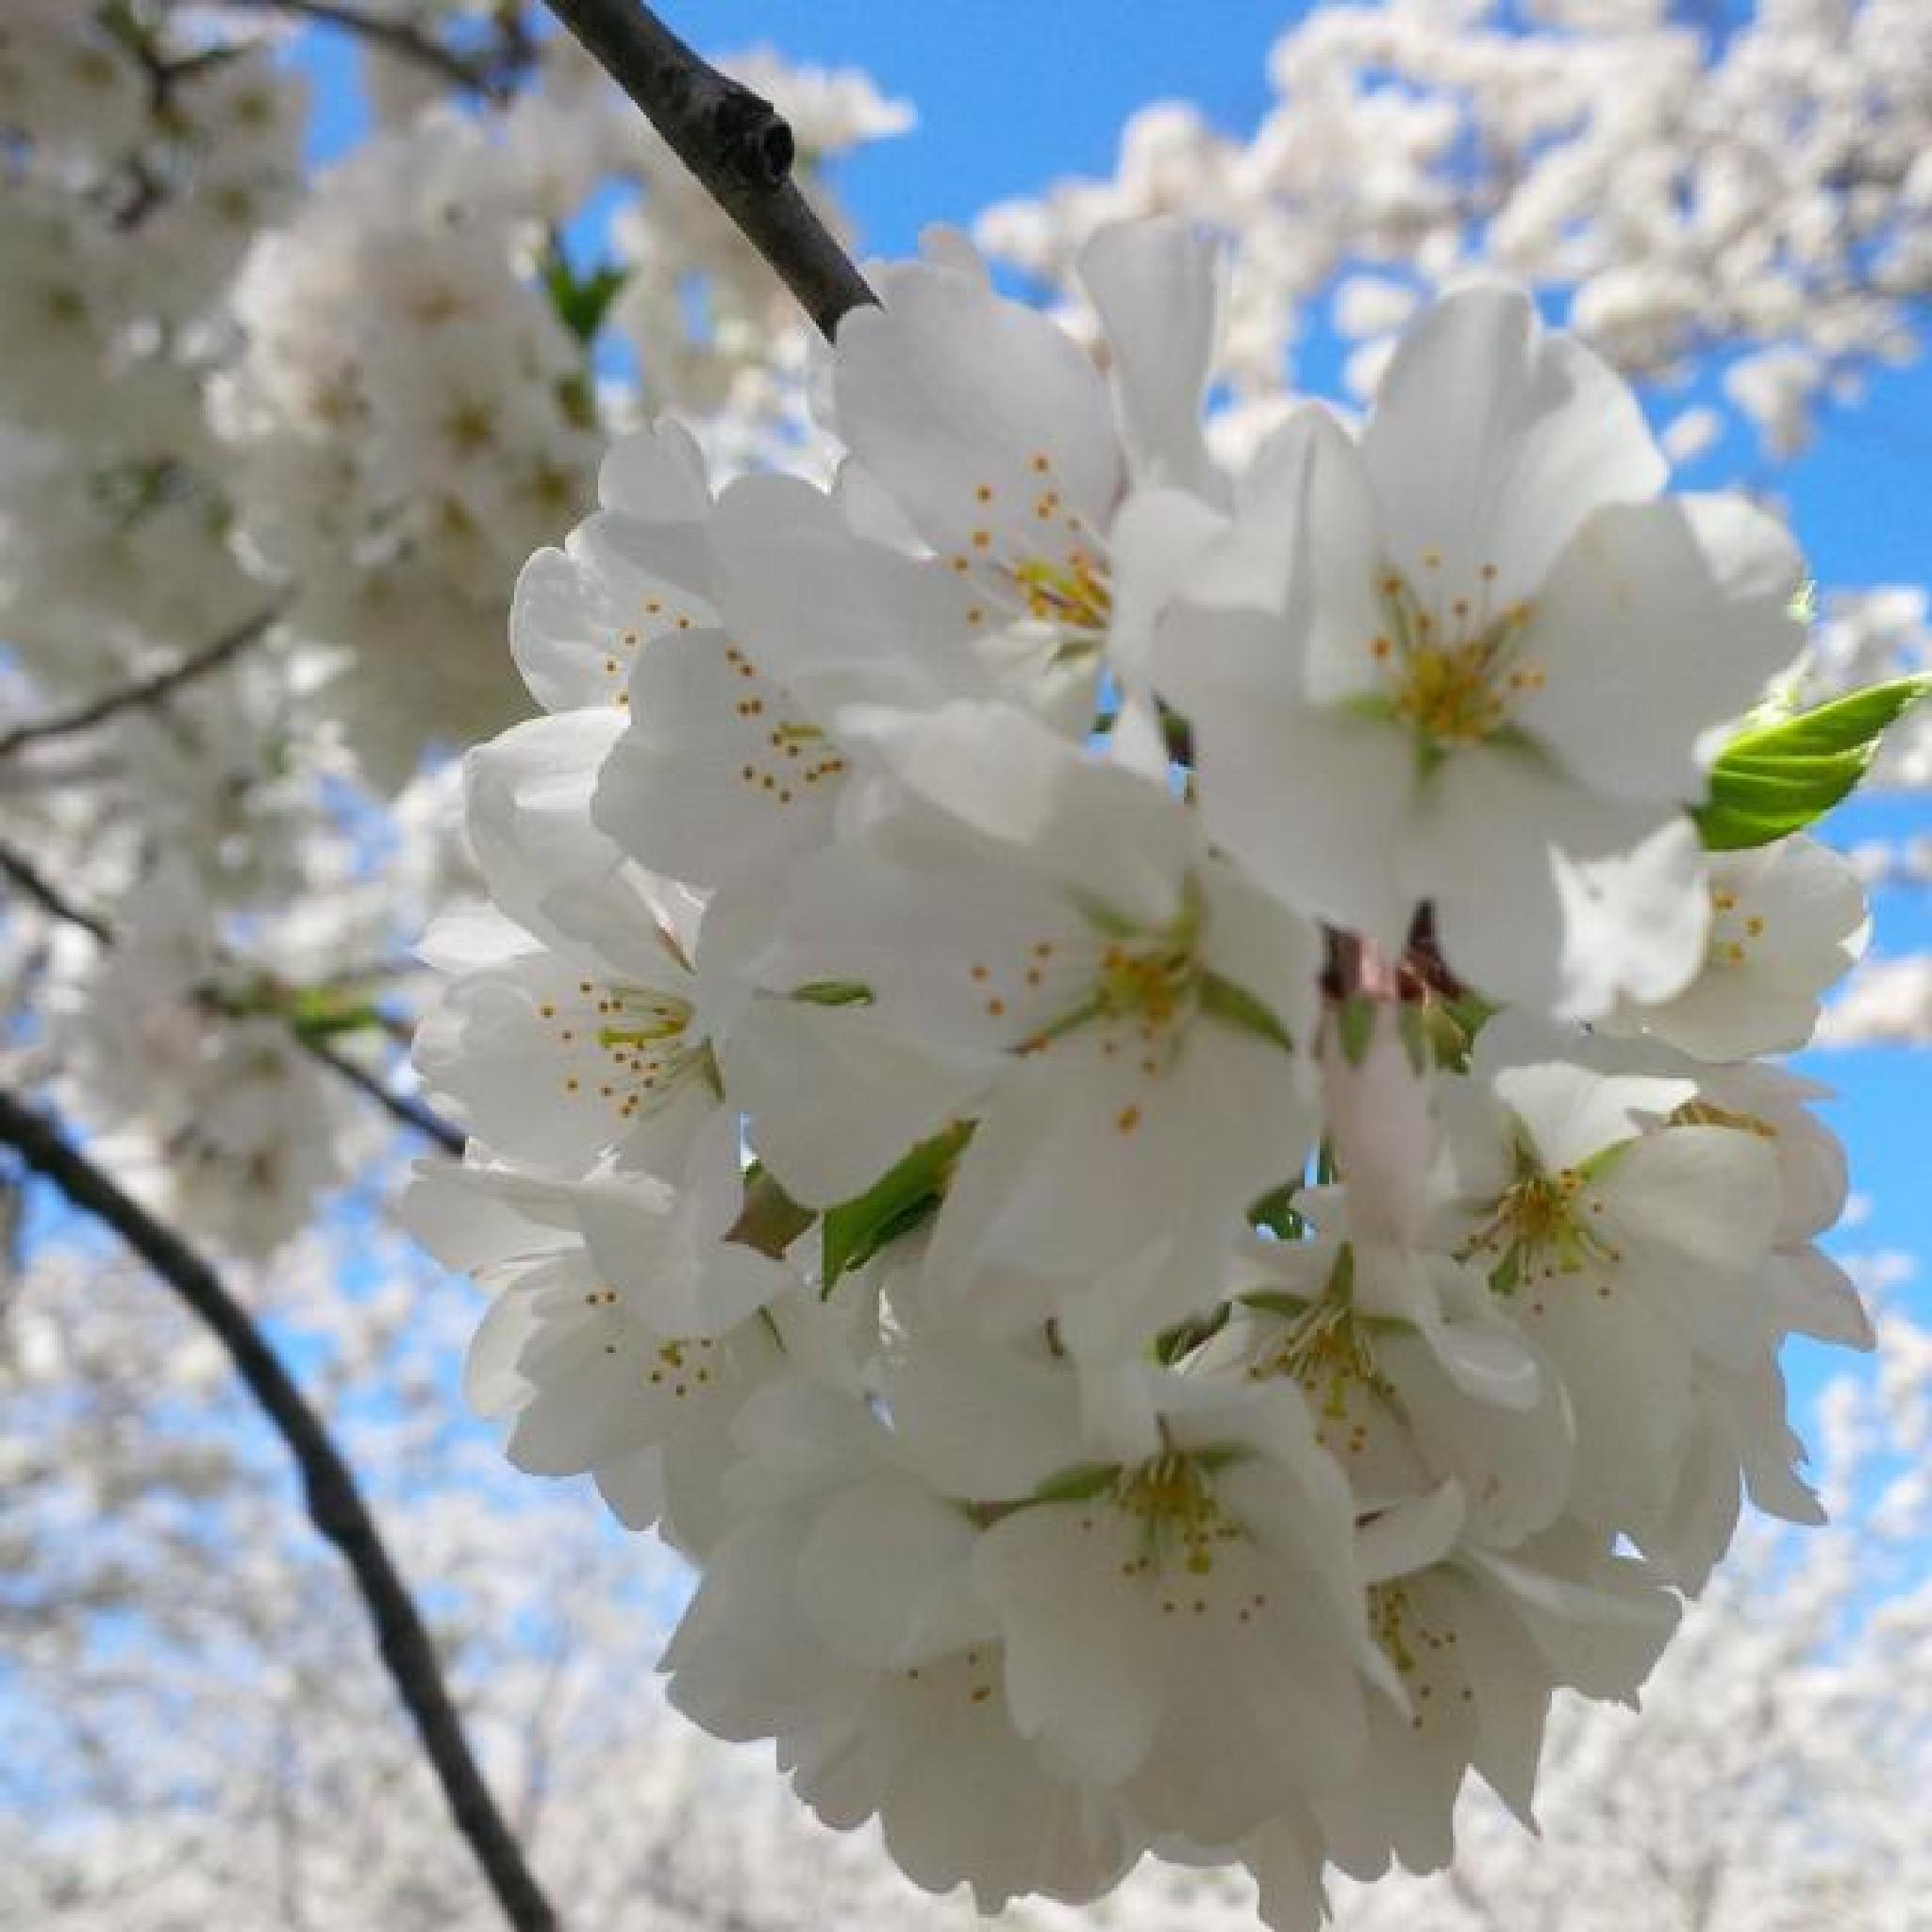 Blossoms Upclose by Gene Ellison